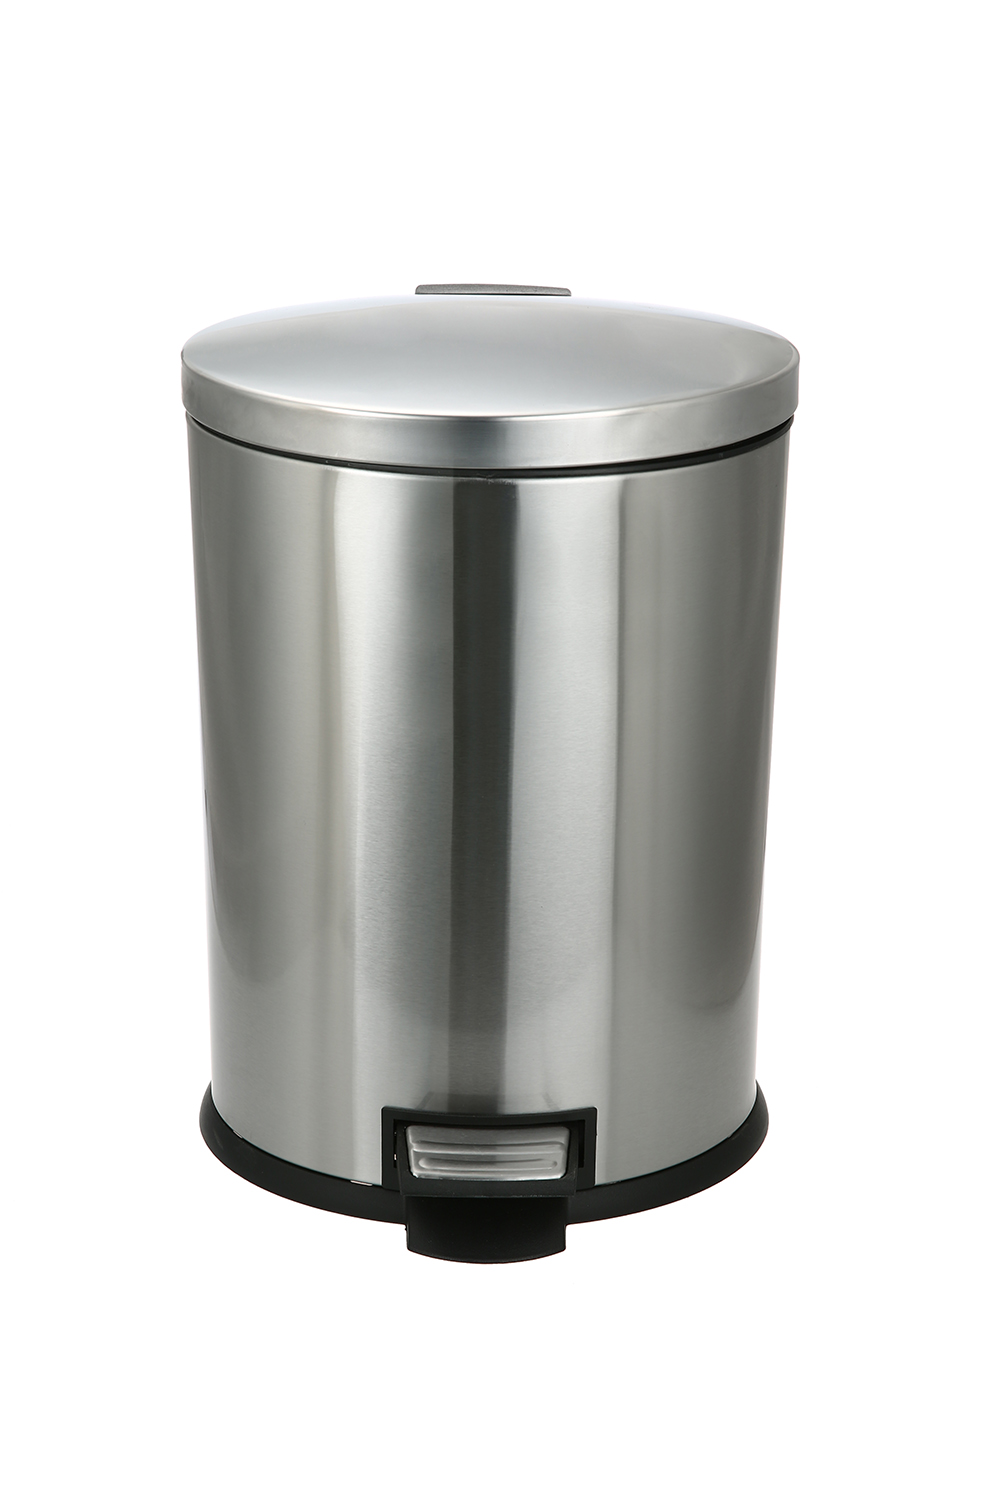 Better Homes & Gardens 3.1 Gal / 12L Oval Step Trash Can, Stainless Steel with Soft Close Lid